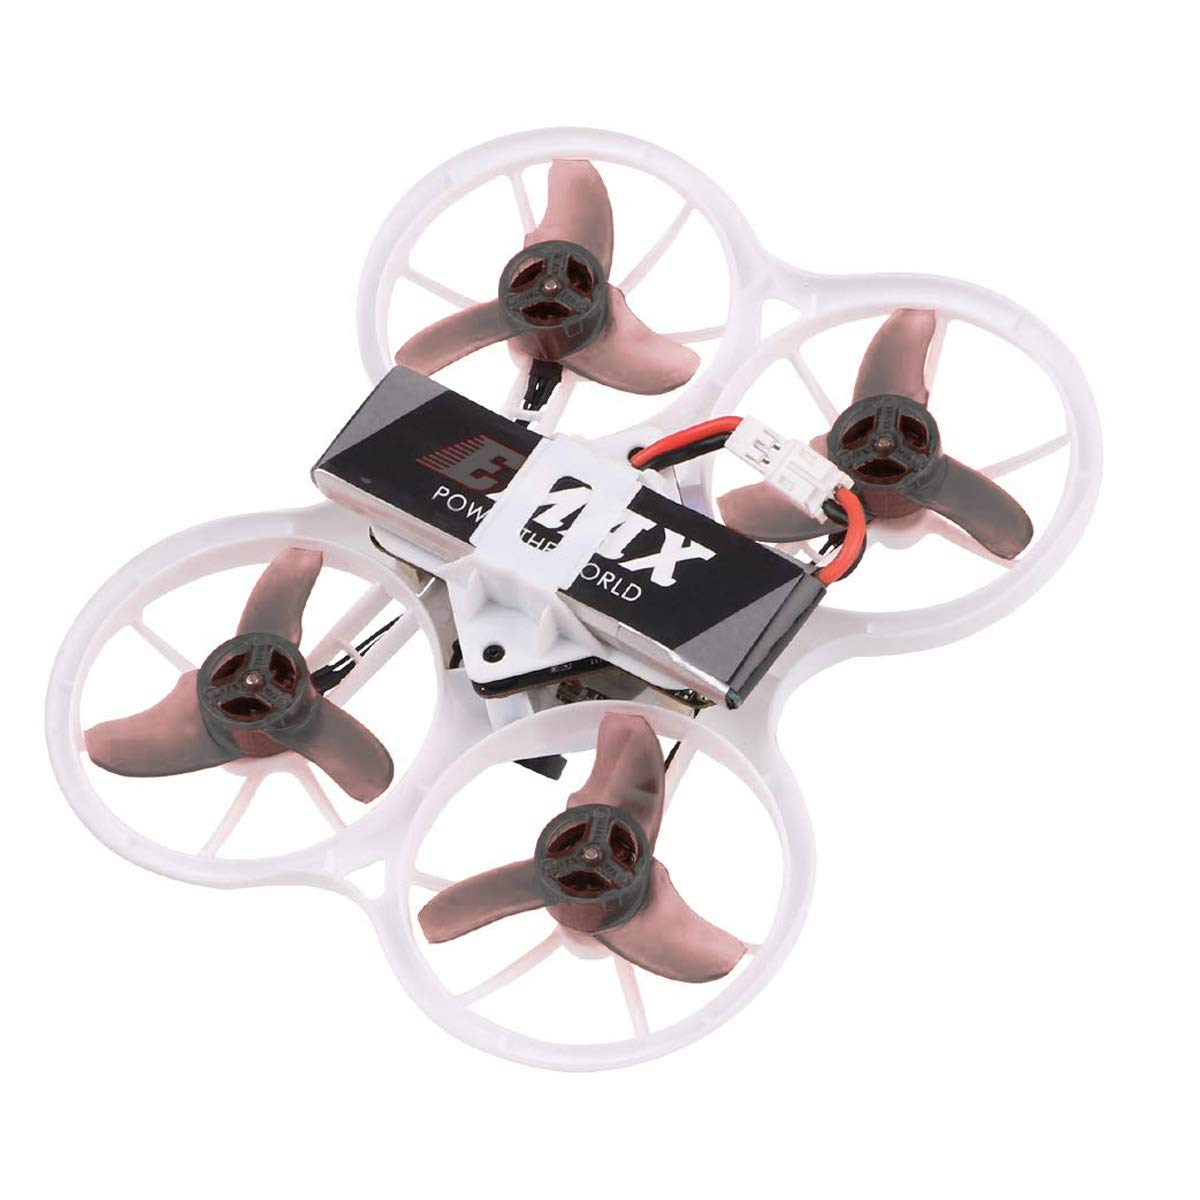 EMAX Tinyhawk Brushless Micro Indoor Racing Drone Whoop 75mm BNF FRSKY BNF Like Tiny Whoop Brushless with 450mah 1s 4.35v HV Battery Plus Crazepony 600mAh 1S 3.7V LiPo Battery Propellers